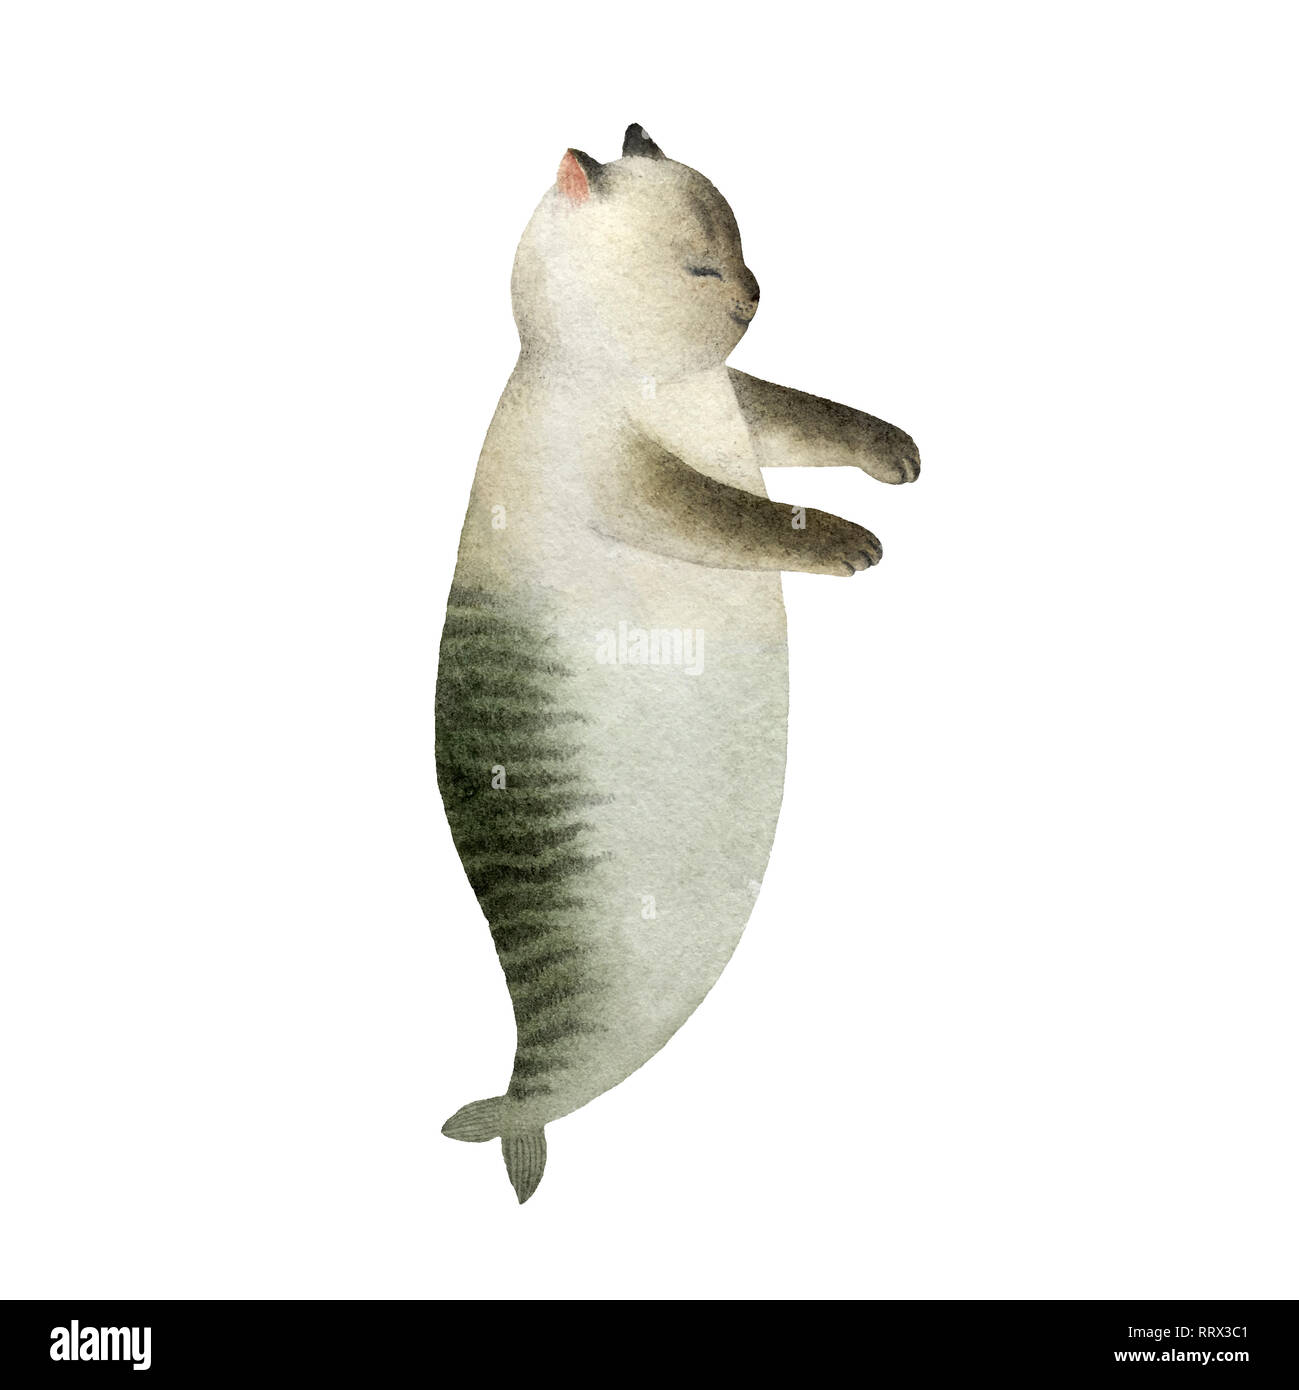 Cute watercolor cat mermaid character isolated on white background for design, postcards, banners. - Stock Image